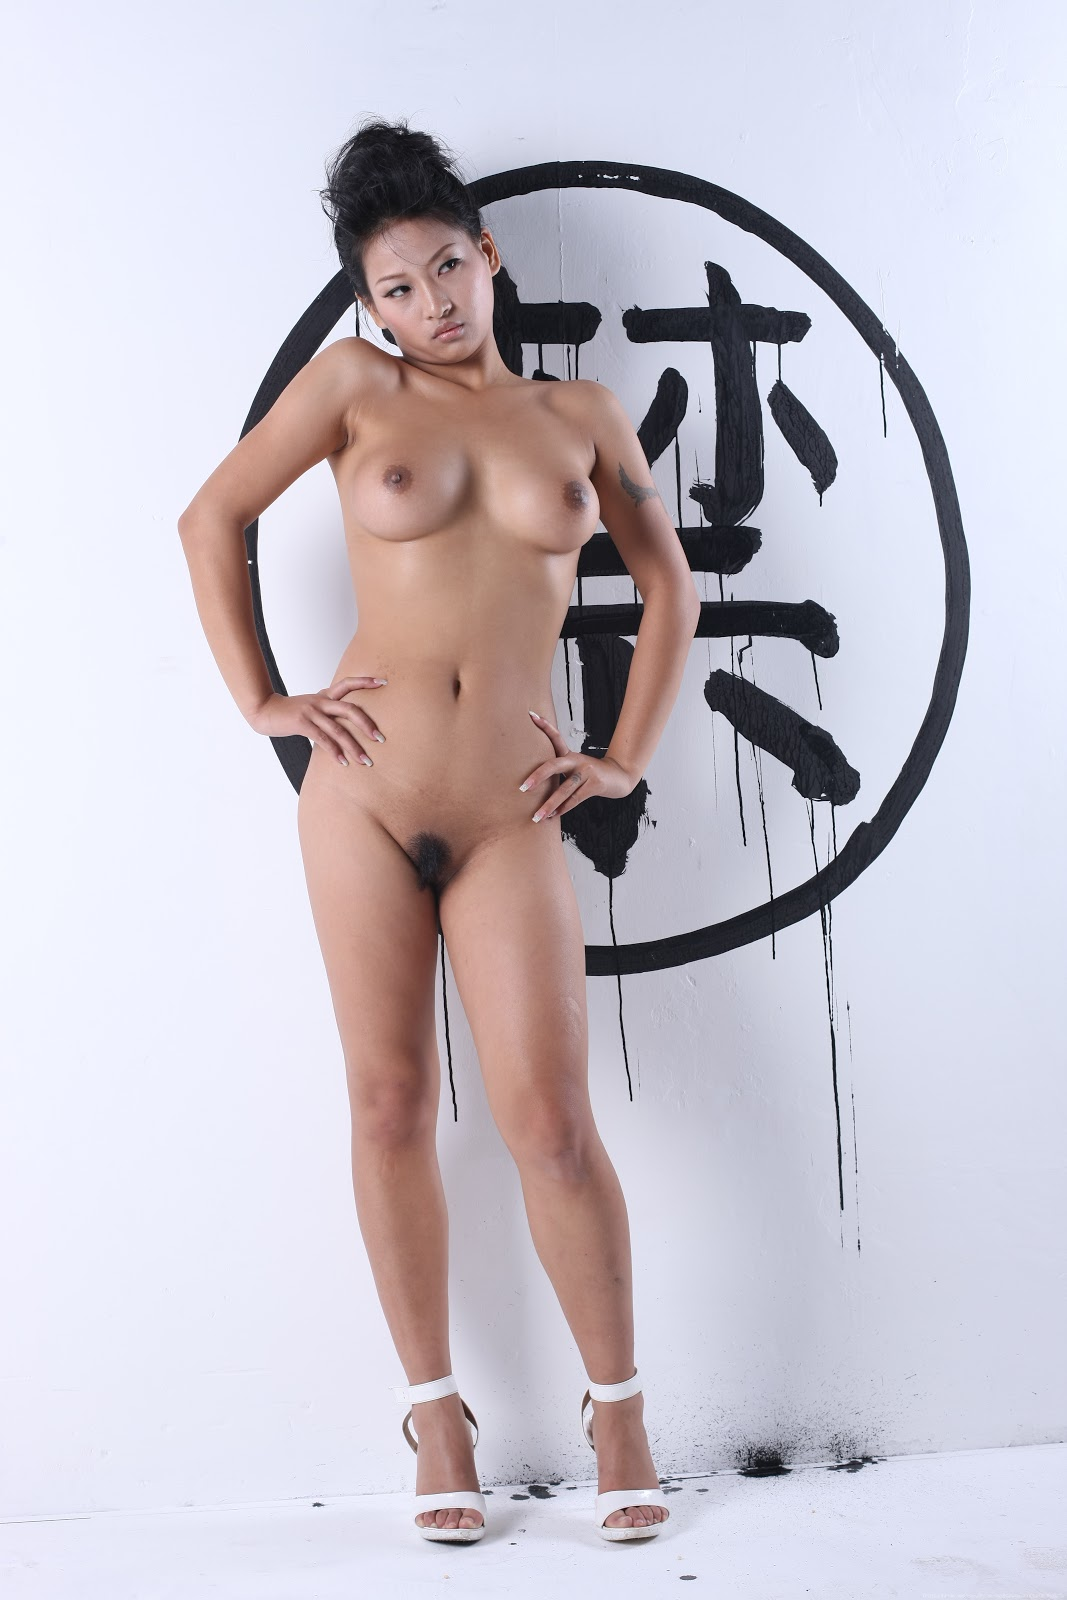 Chinese_Nude_Art_Photos_-_291_-_YouXuan_Vol_1.rar.3R8W5330 Chinese Nude_Art_Photos_-_291_-_YouXuan_Vol_1.rar